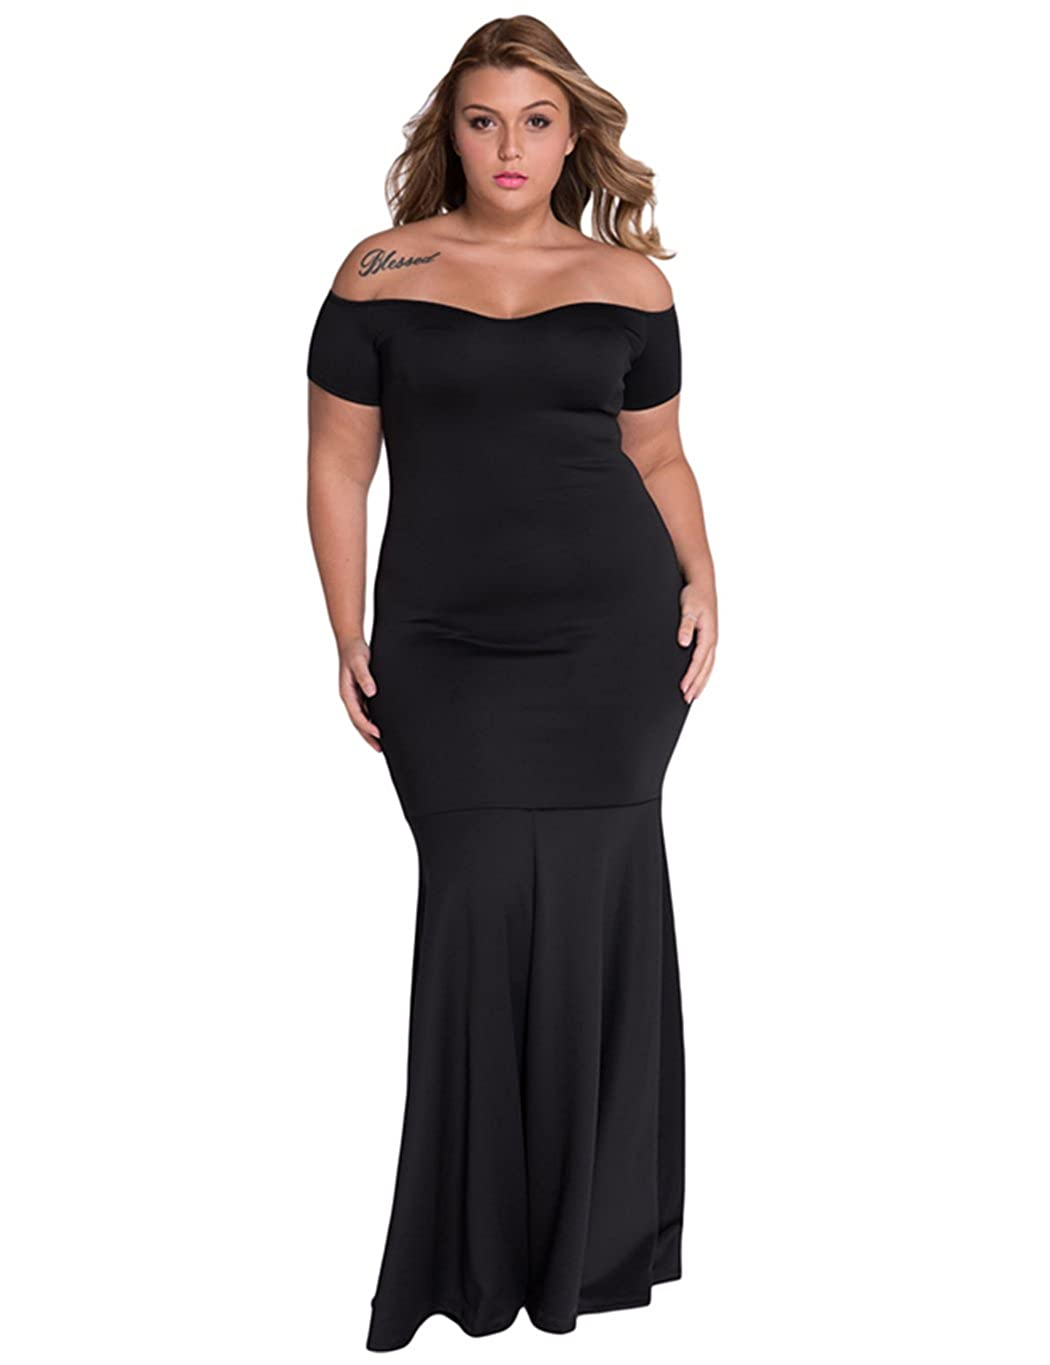 ca55d051ce Bodycon fit long dress, made of thick smooth stretch fabric. Elegant dress  for evening party, finished with mermaid skirt style hemline. Plus size ...